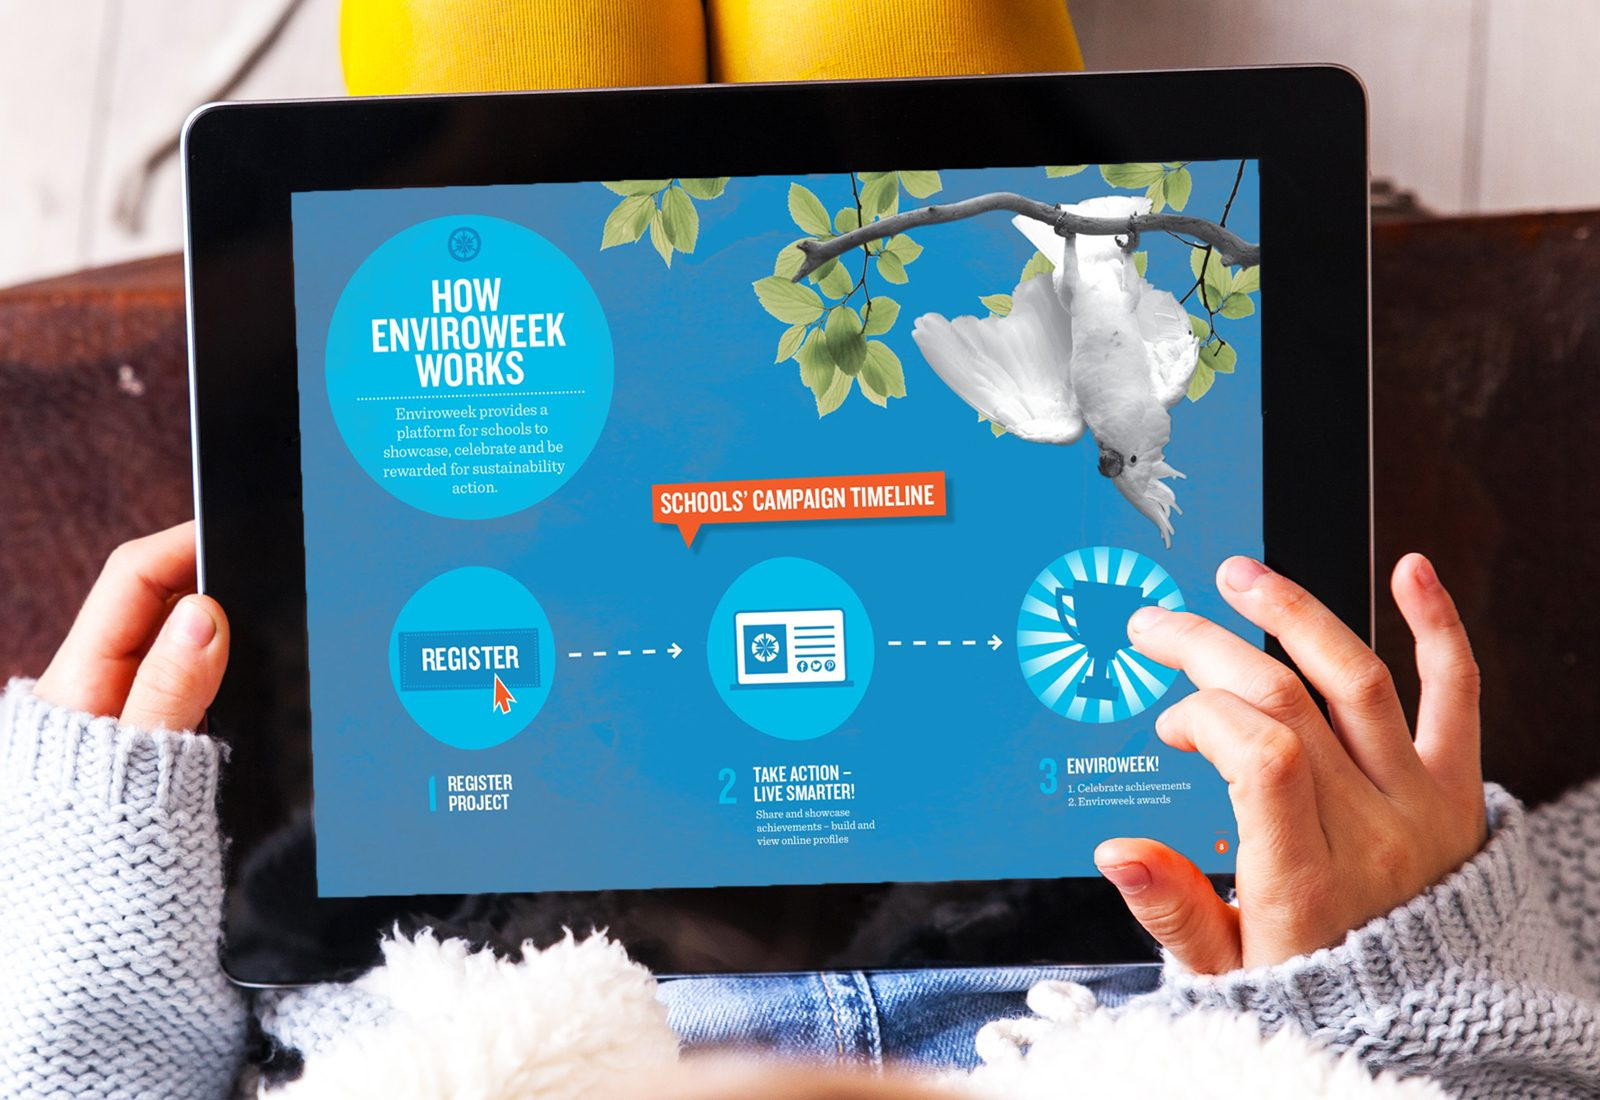 Enviroweek campaign design shown on ipad